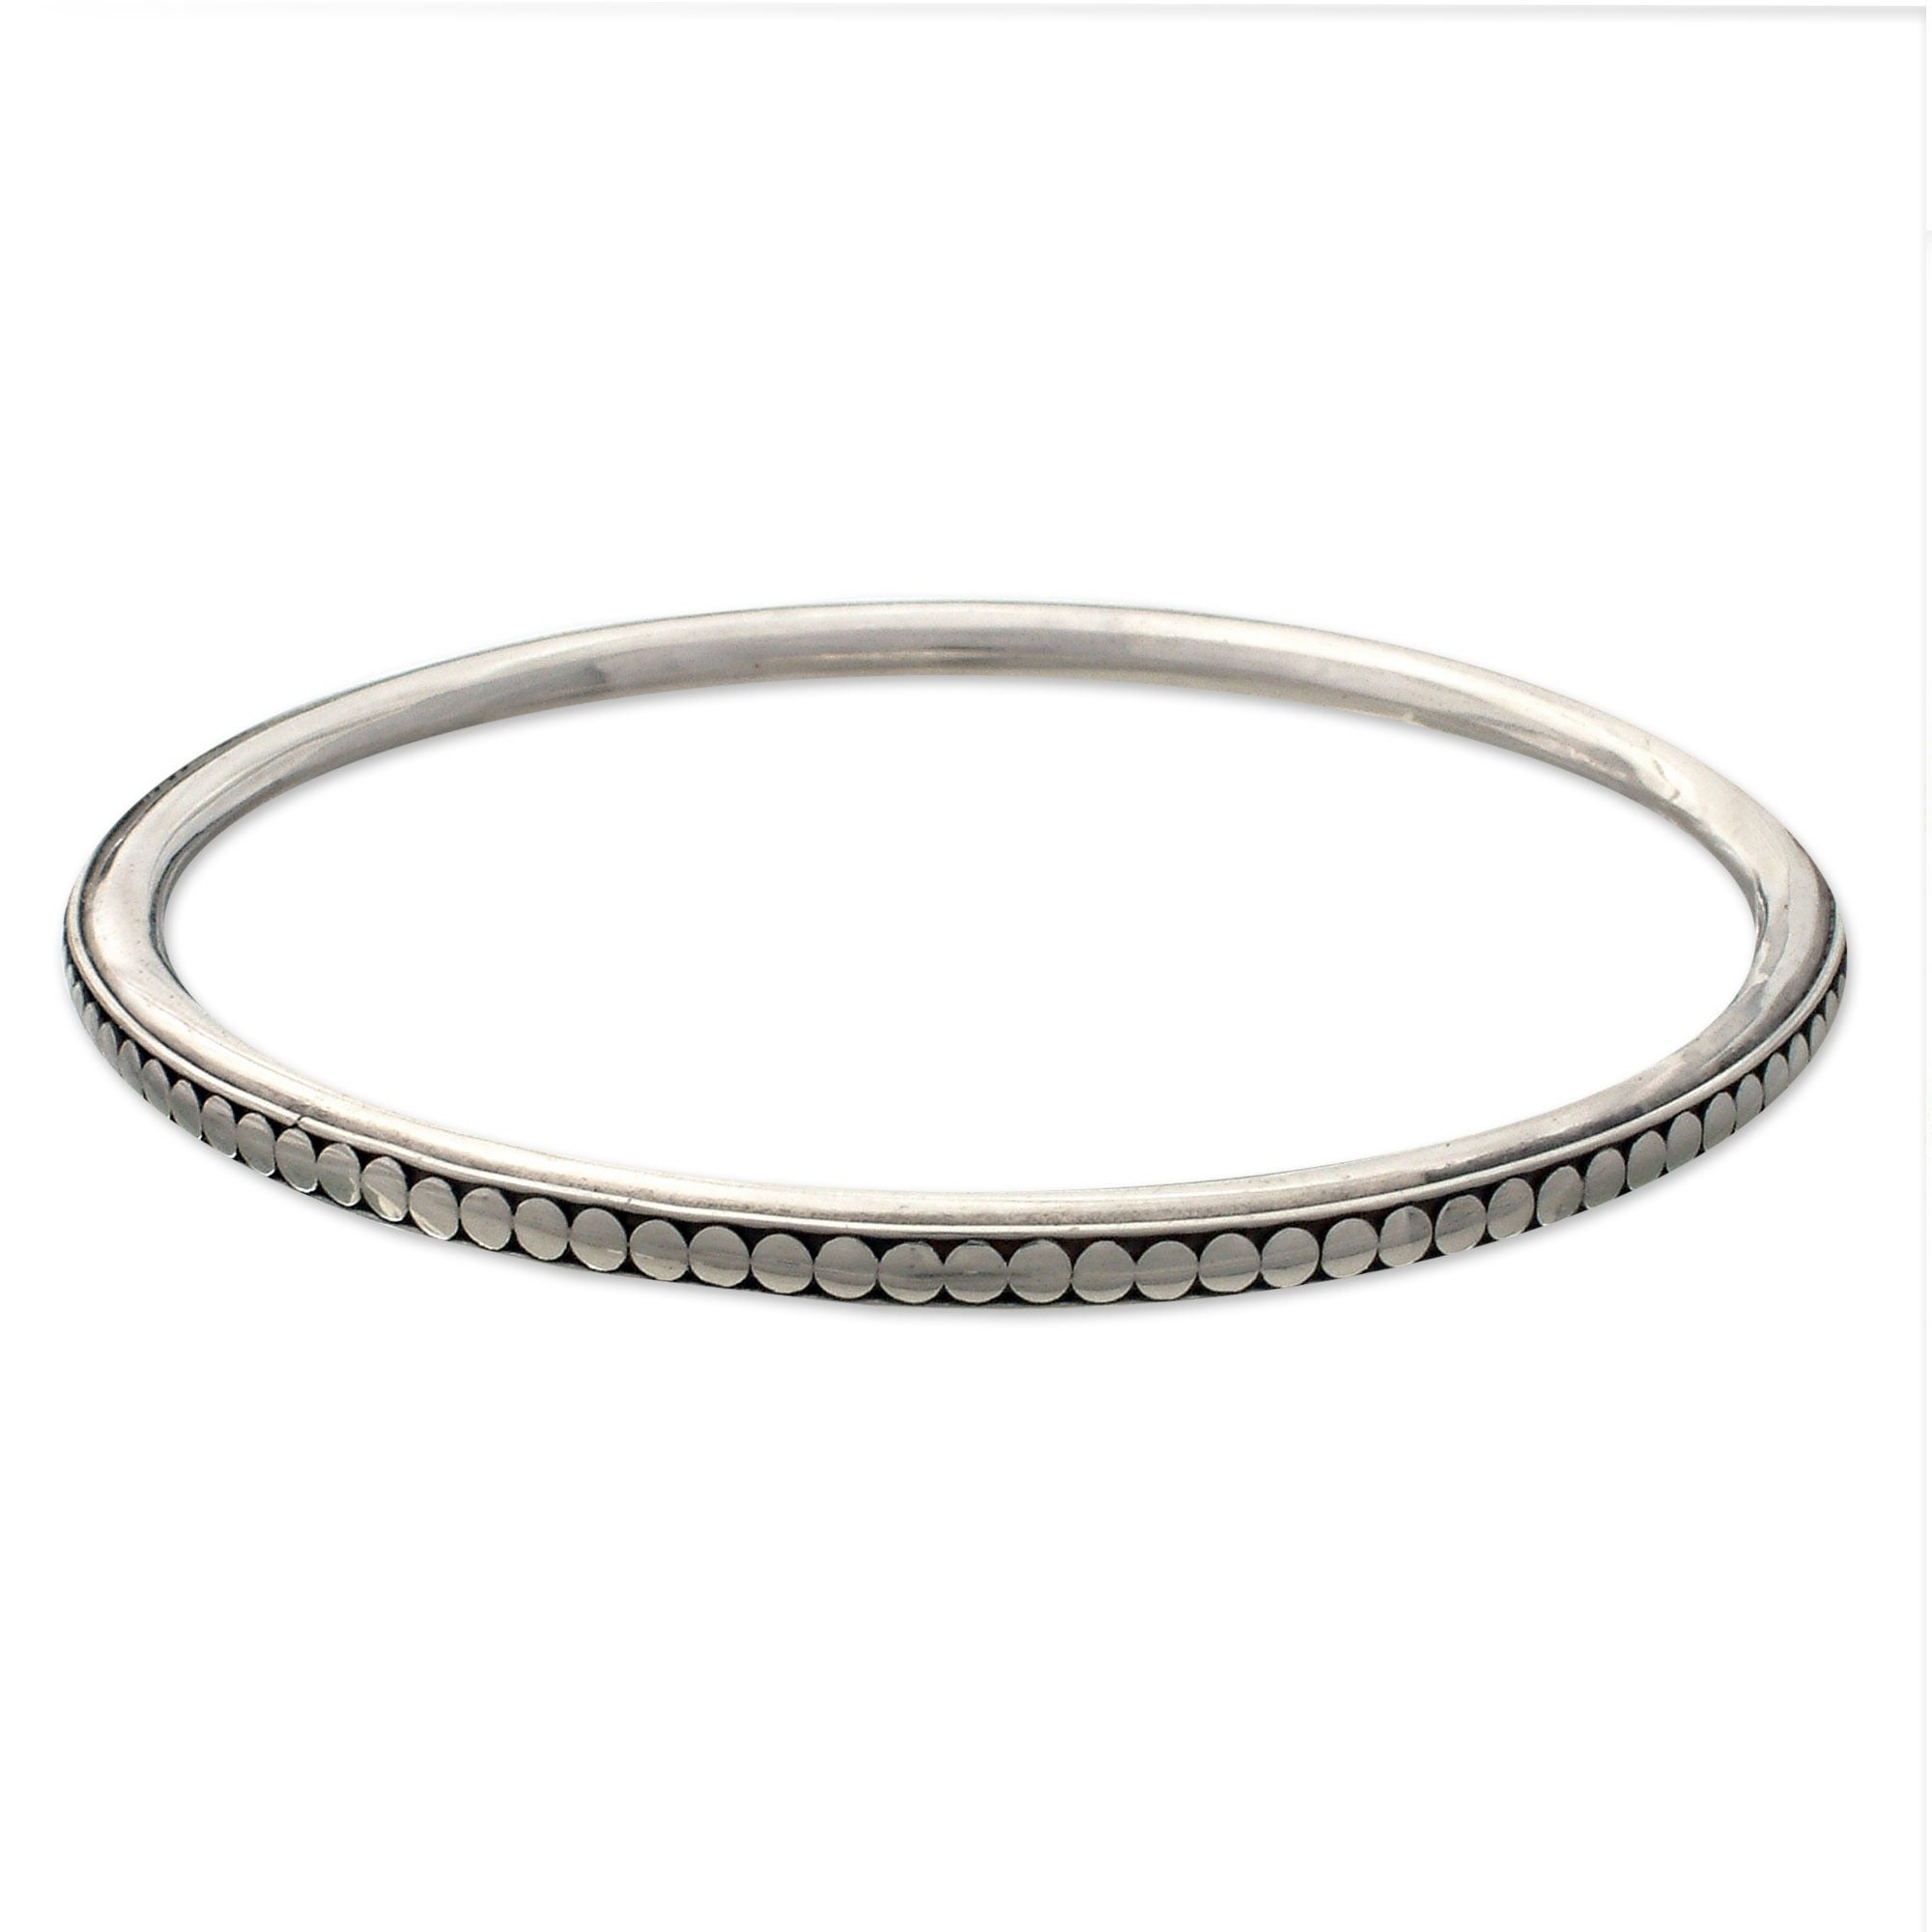 antiqued product kb label bangles jewelry bangle the ella silver